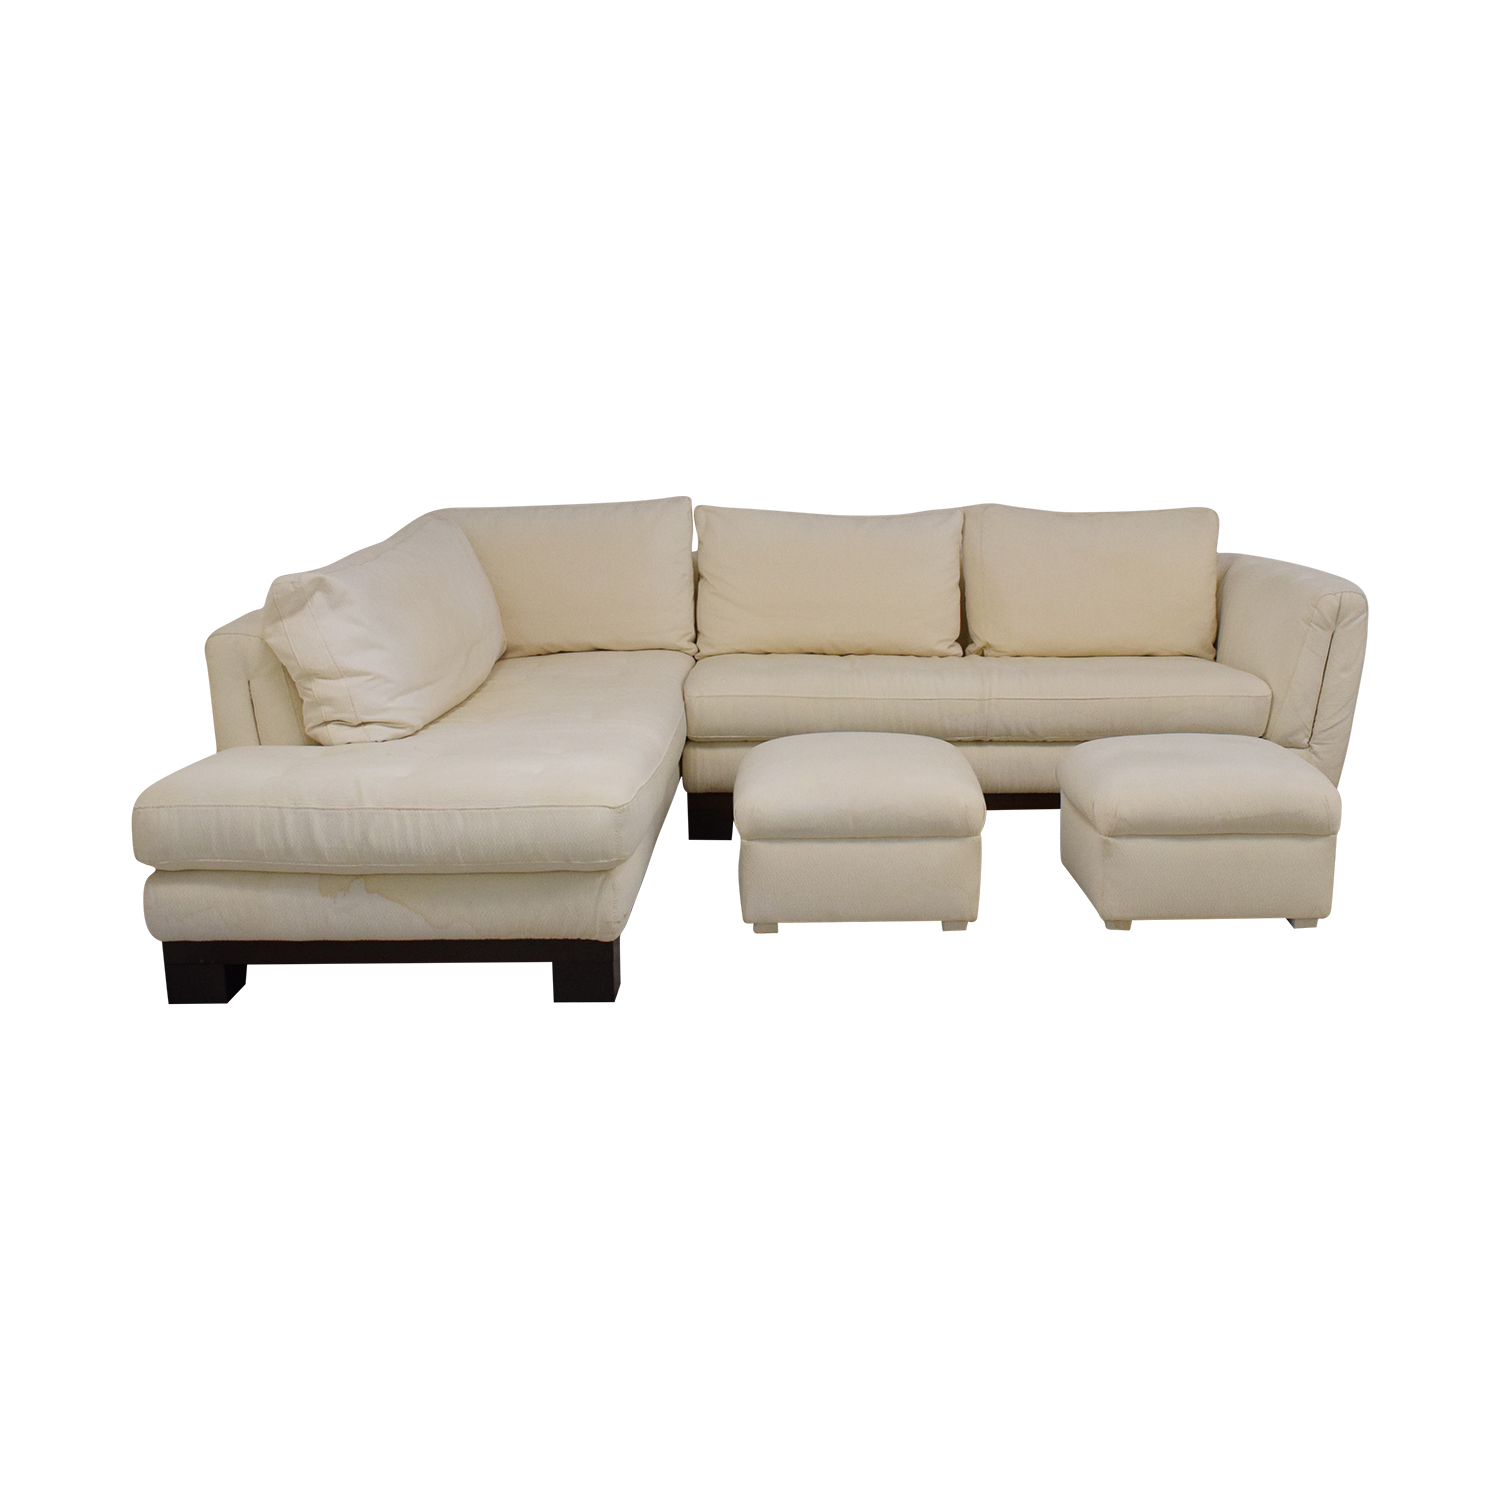 buy Maurice Villency Signed Tufted Sectional Sofa with Ottomans Maurice Villency Sofas